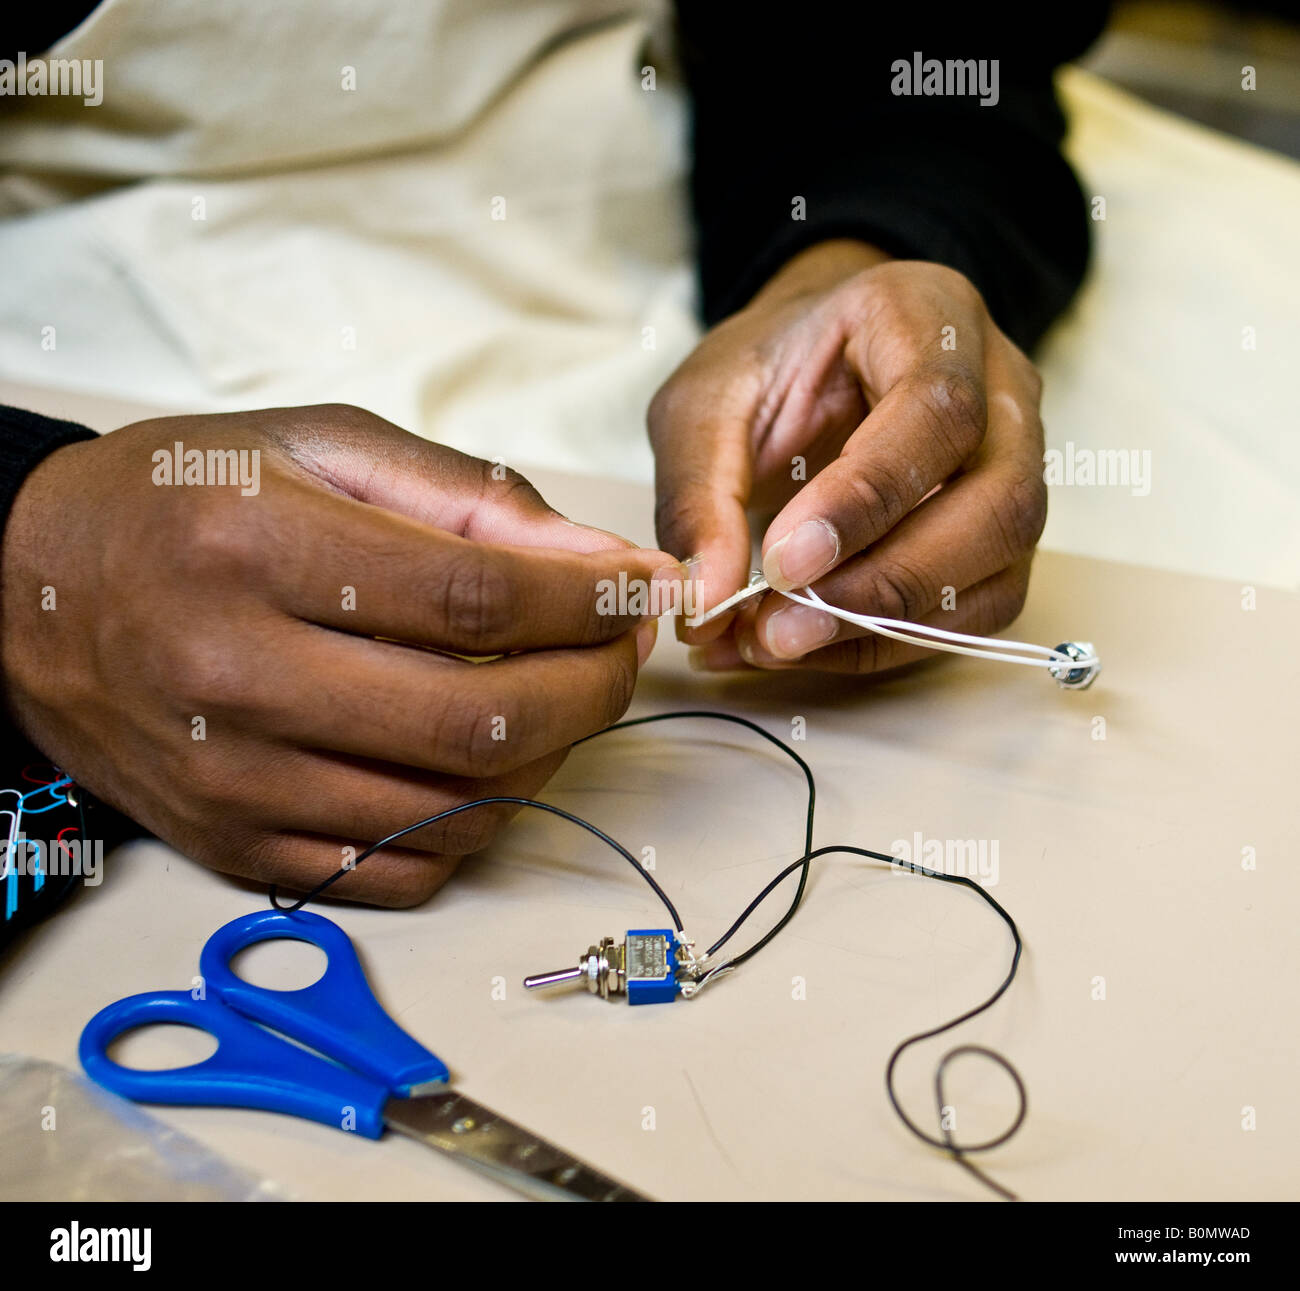 Education - A student working in a school practical electronics lesson. - Stock Image